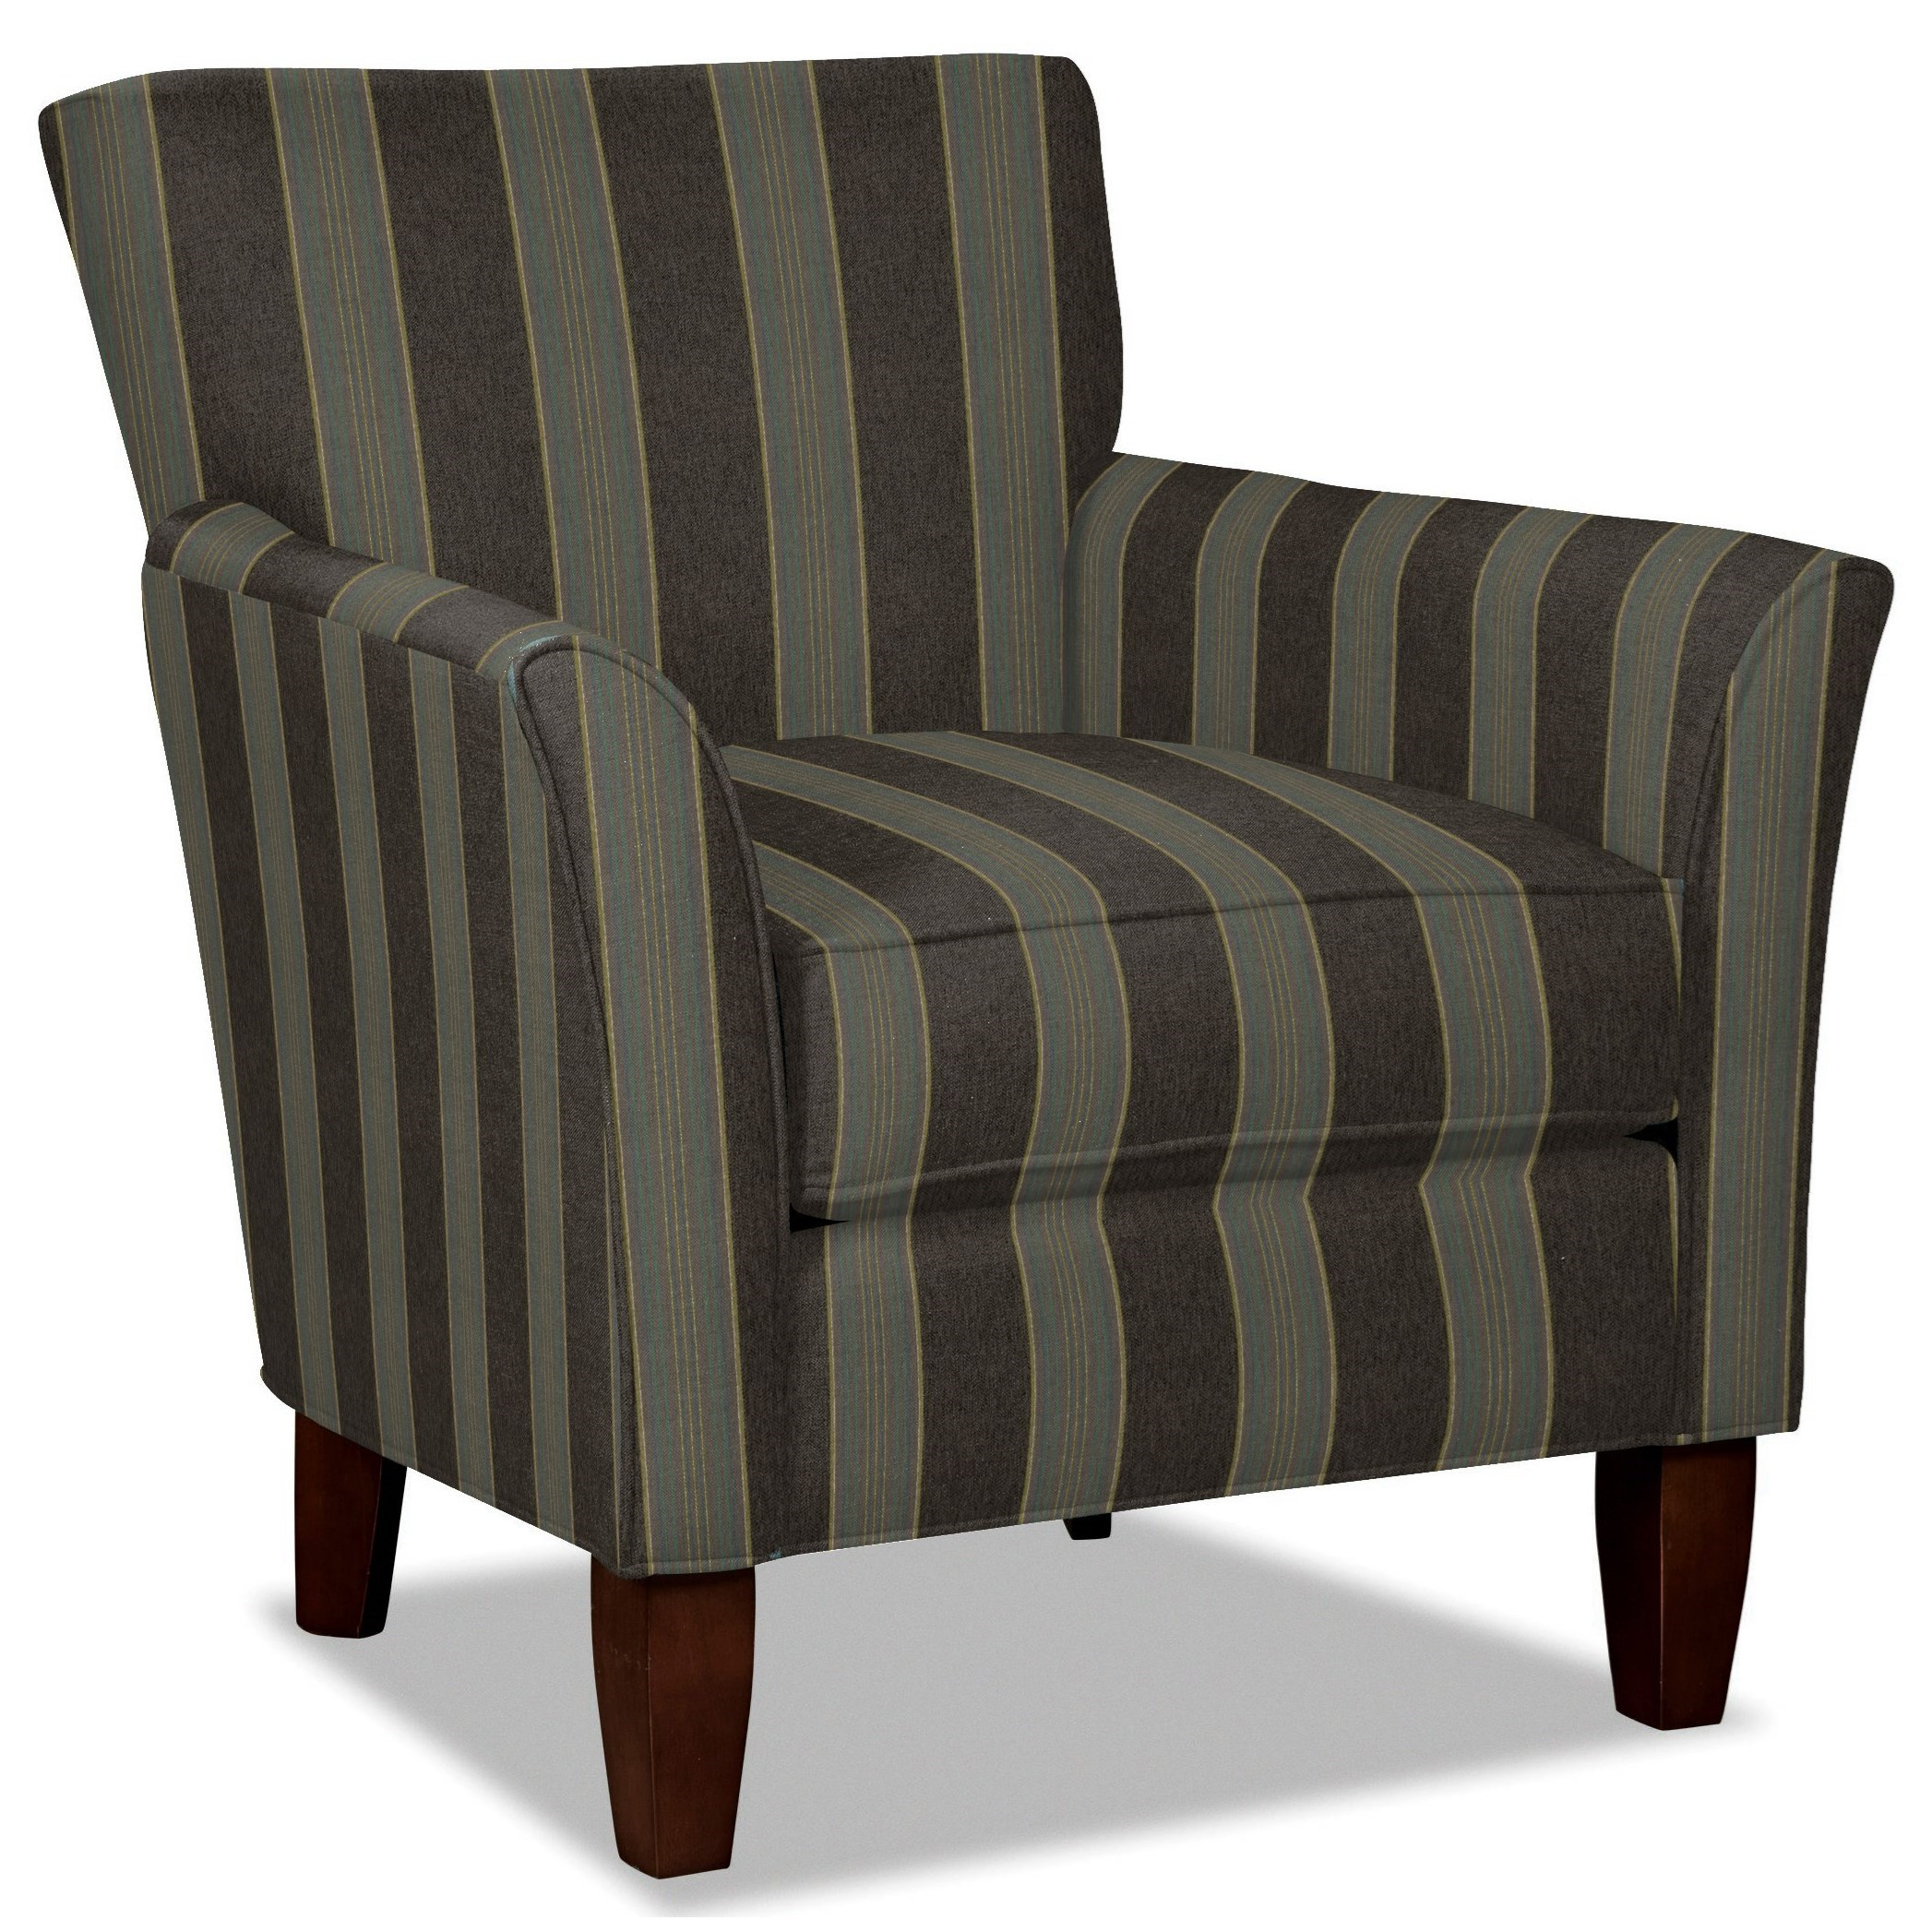 Craftmaster 060110 Accent Chair - Item Number: 060110-HUE-41